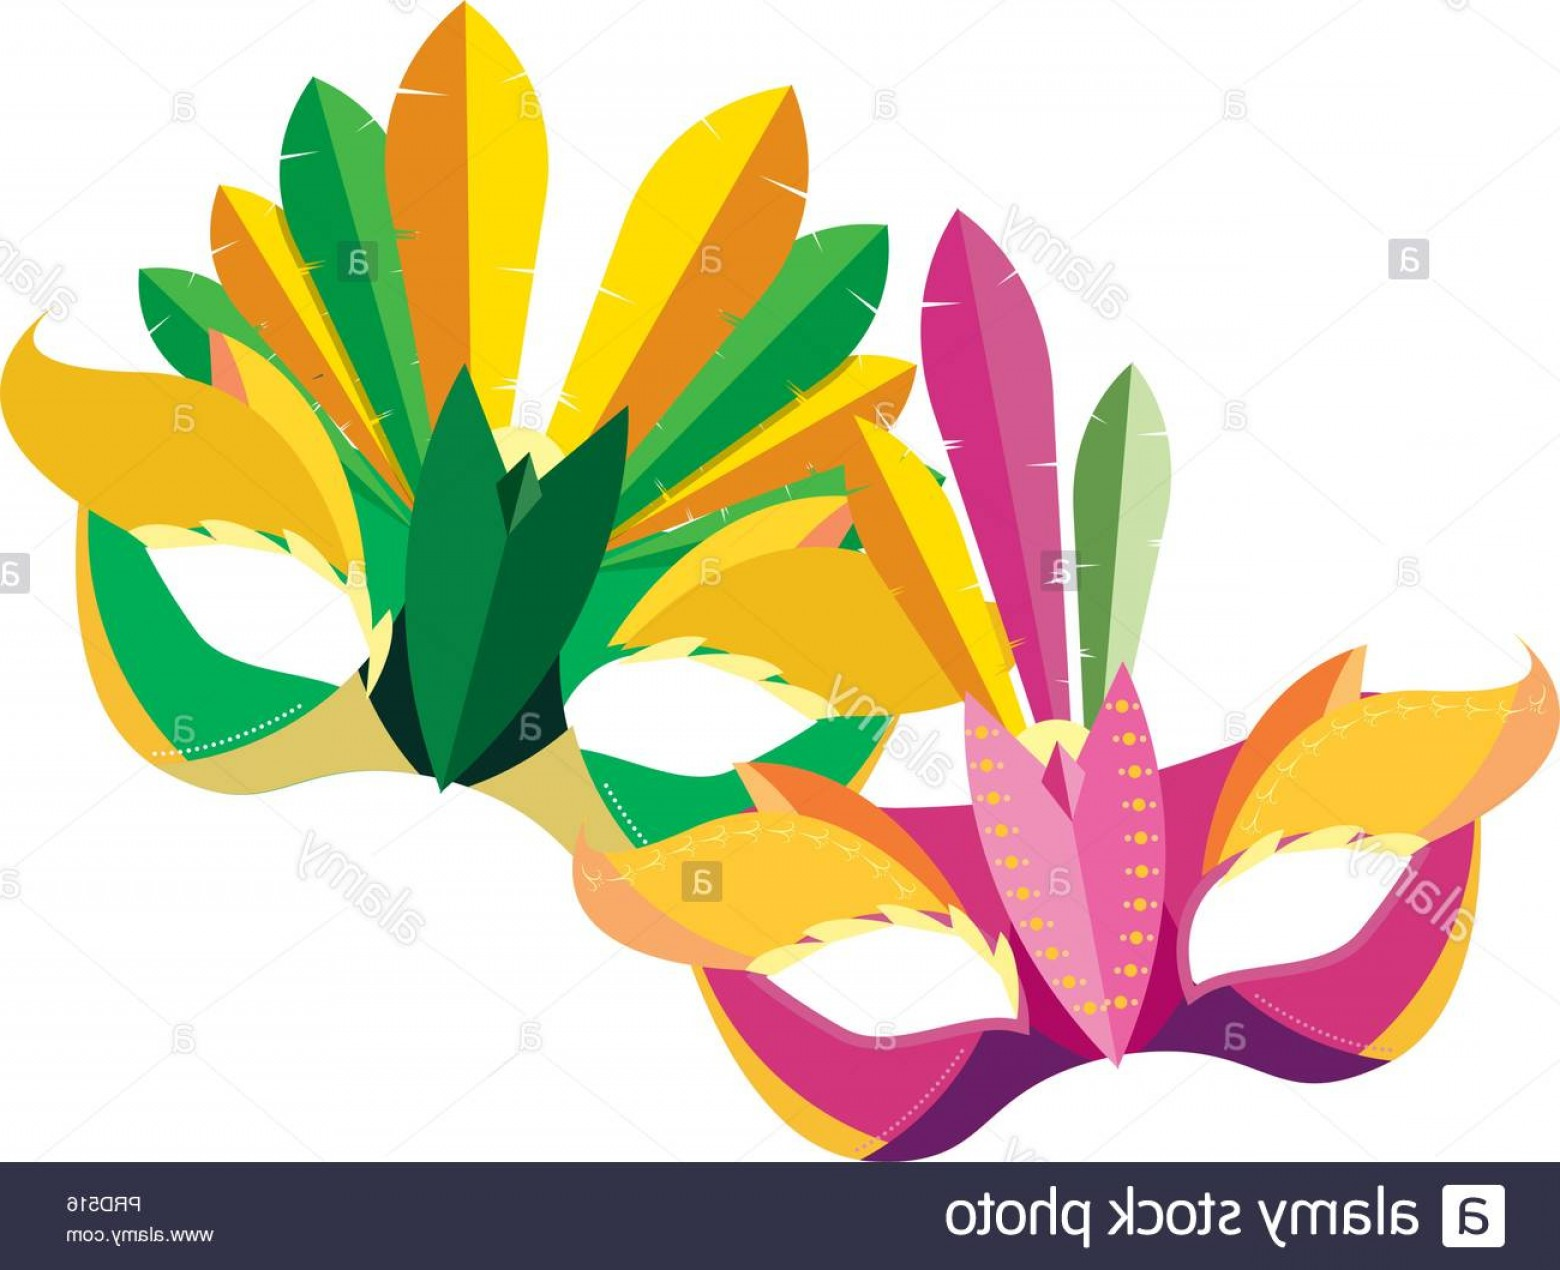 Carnival Vector Feather Art: Carnival Festival Masks Feathers Ornament Vector Illustration Image